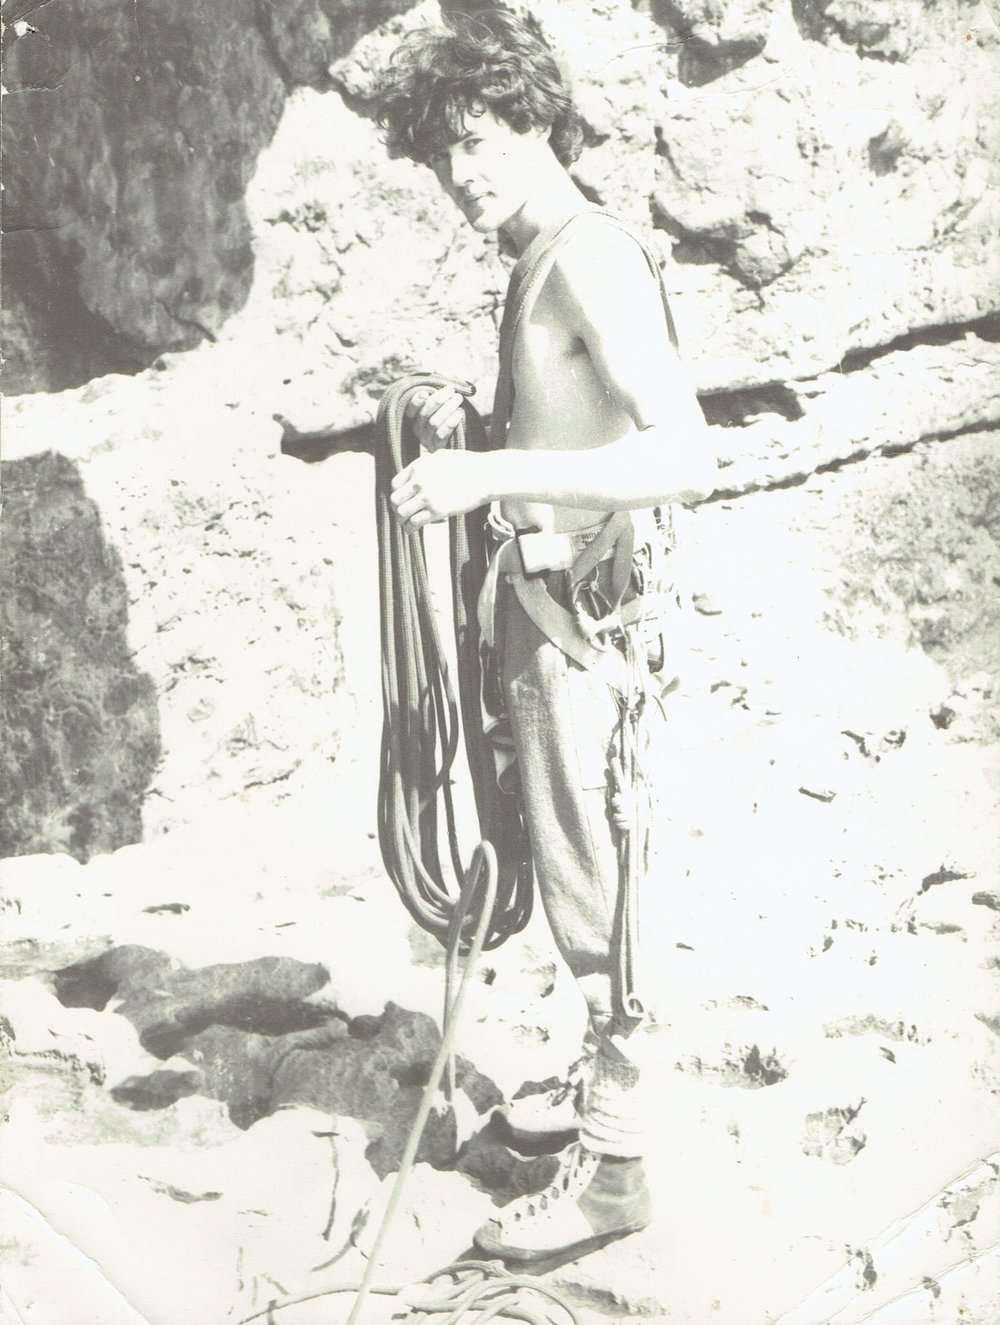 Climbing at Swanage, aged about 16